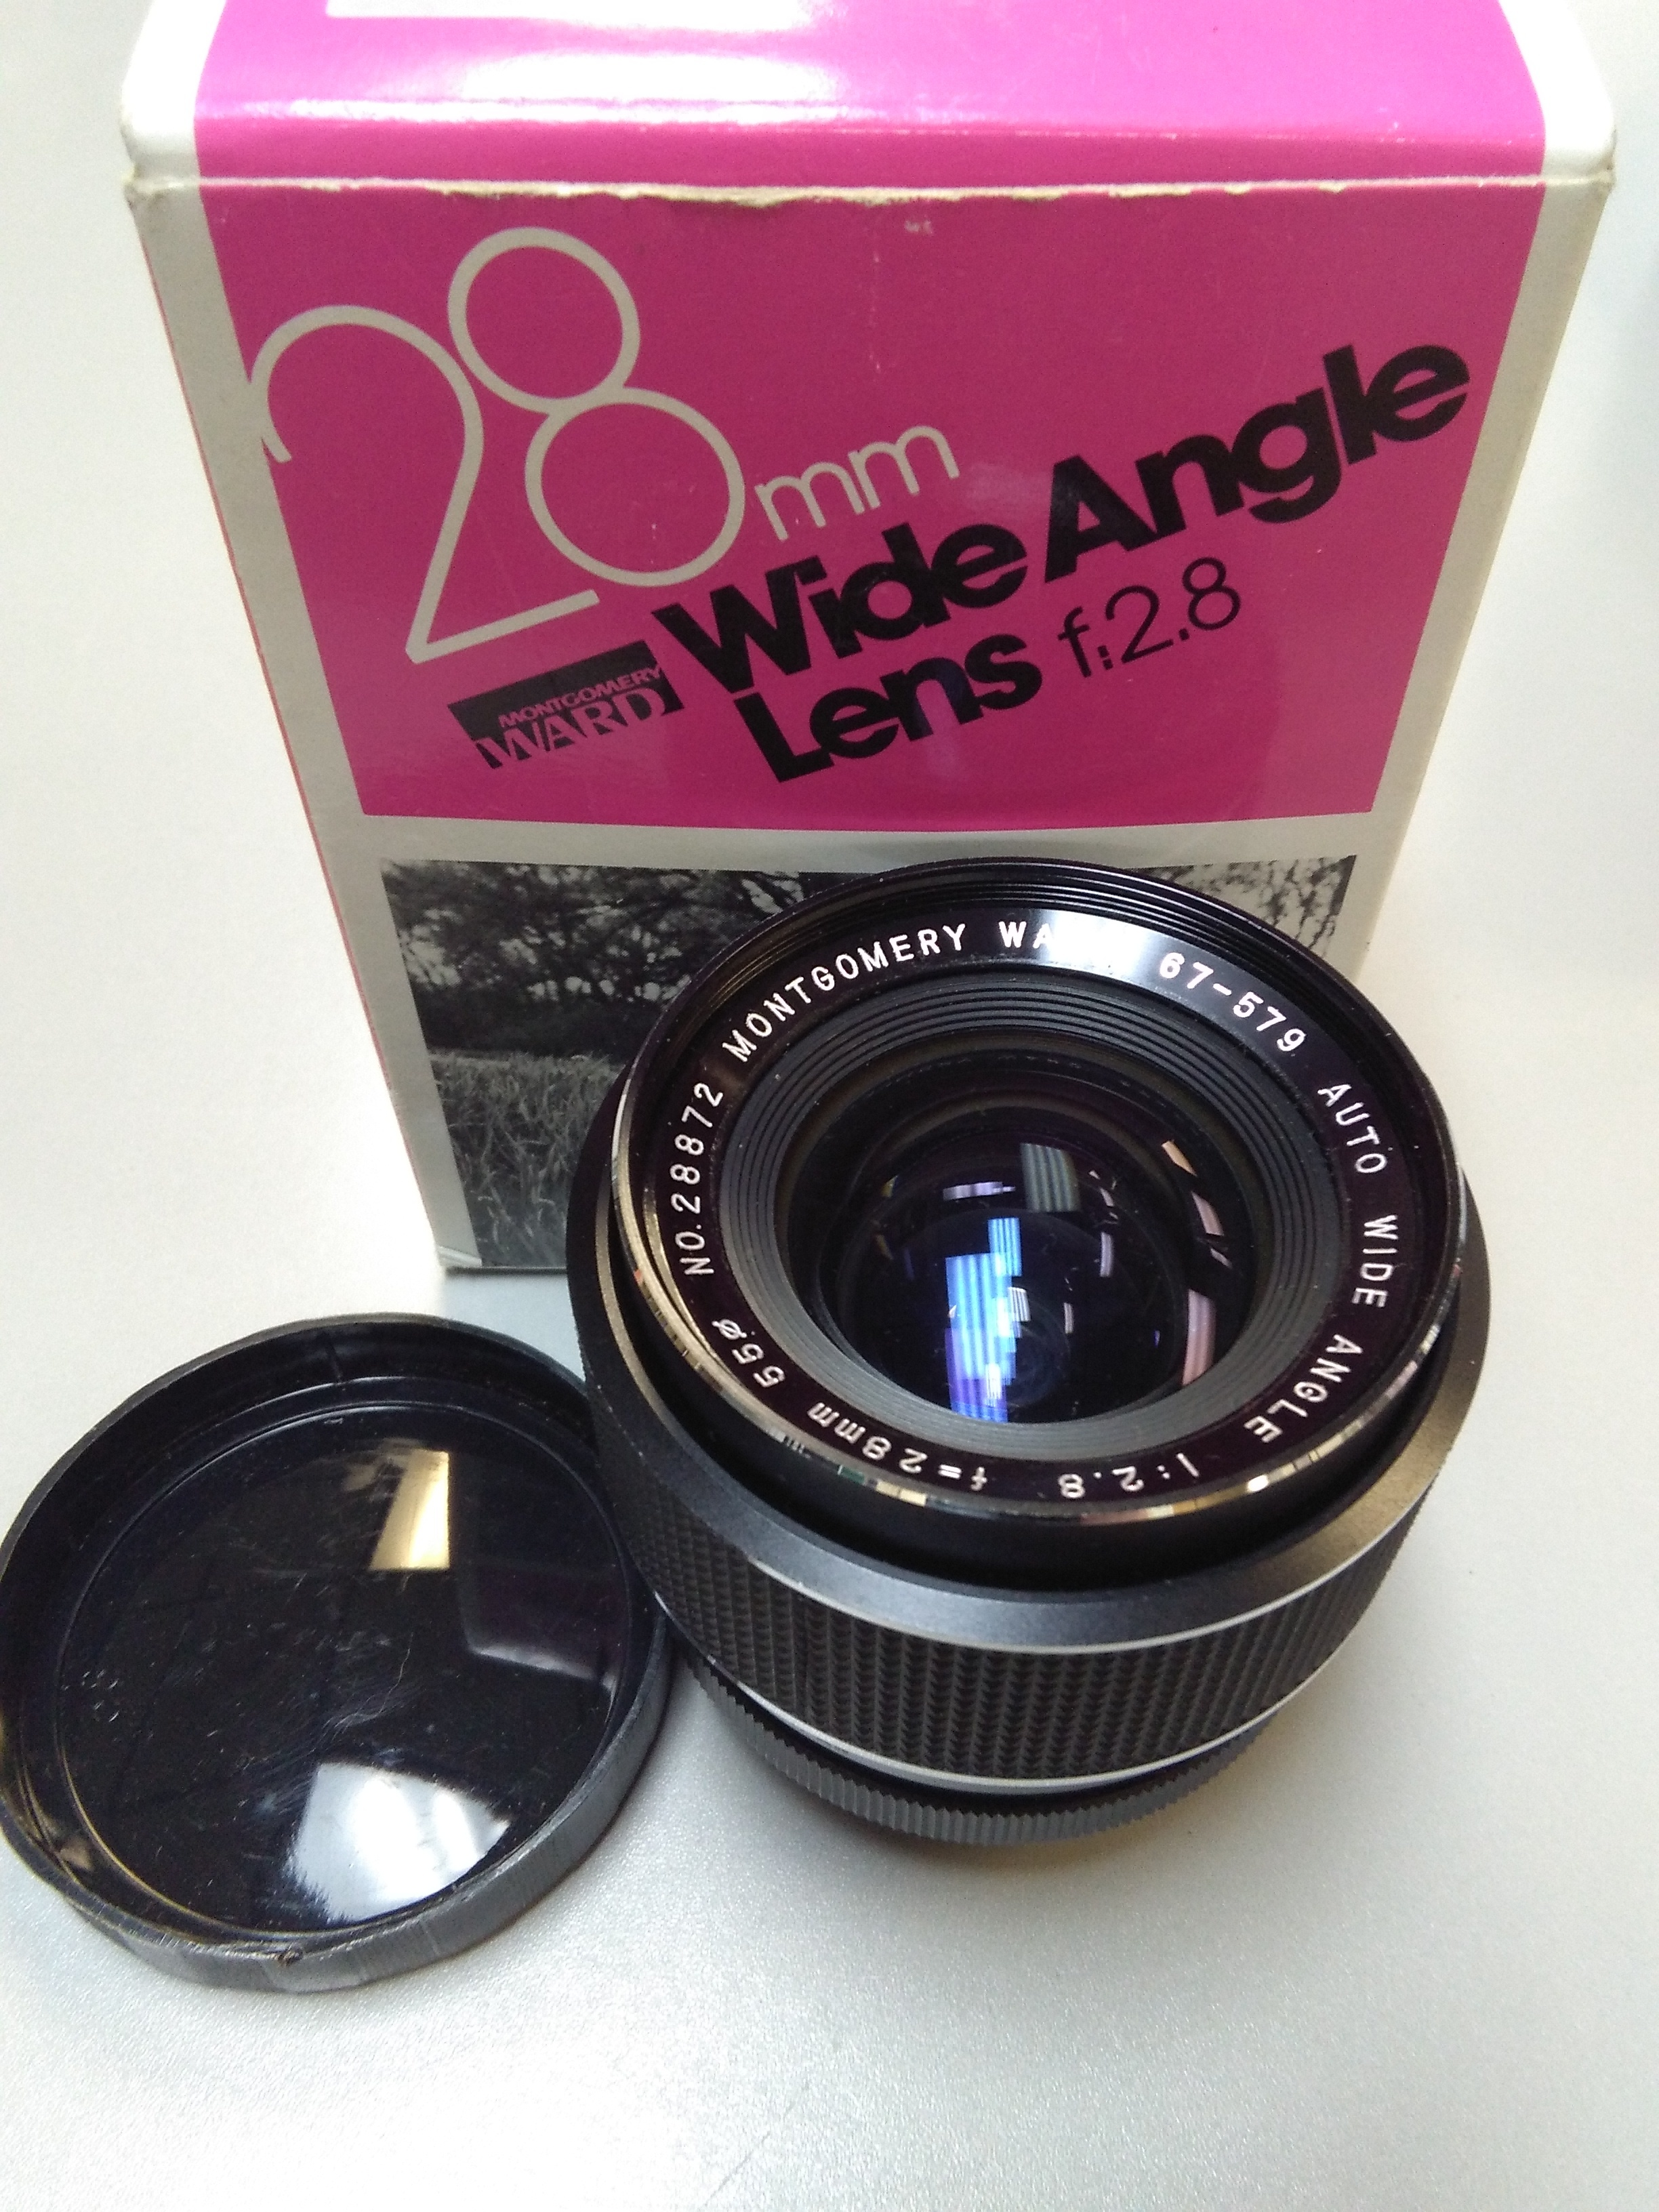 MONTGOMERY WARD 28 MM WIDE ANGLE LENS